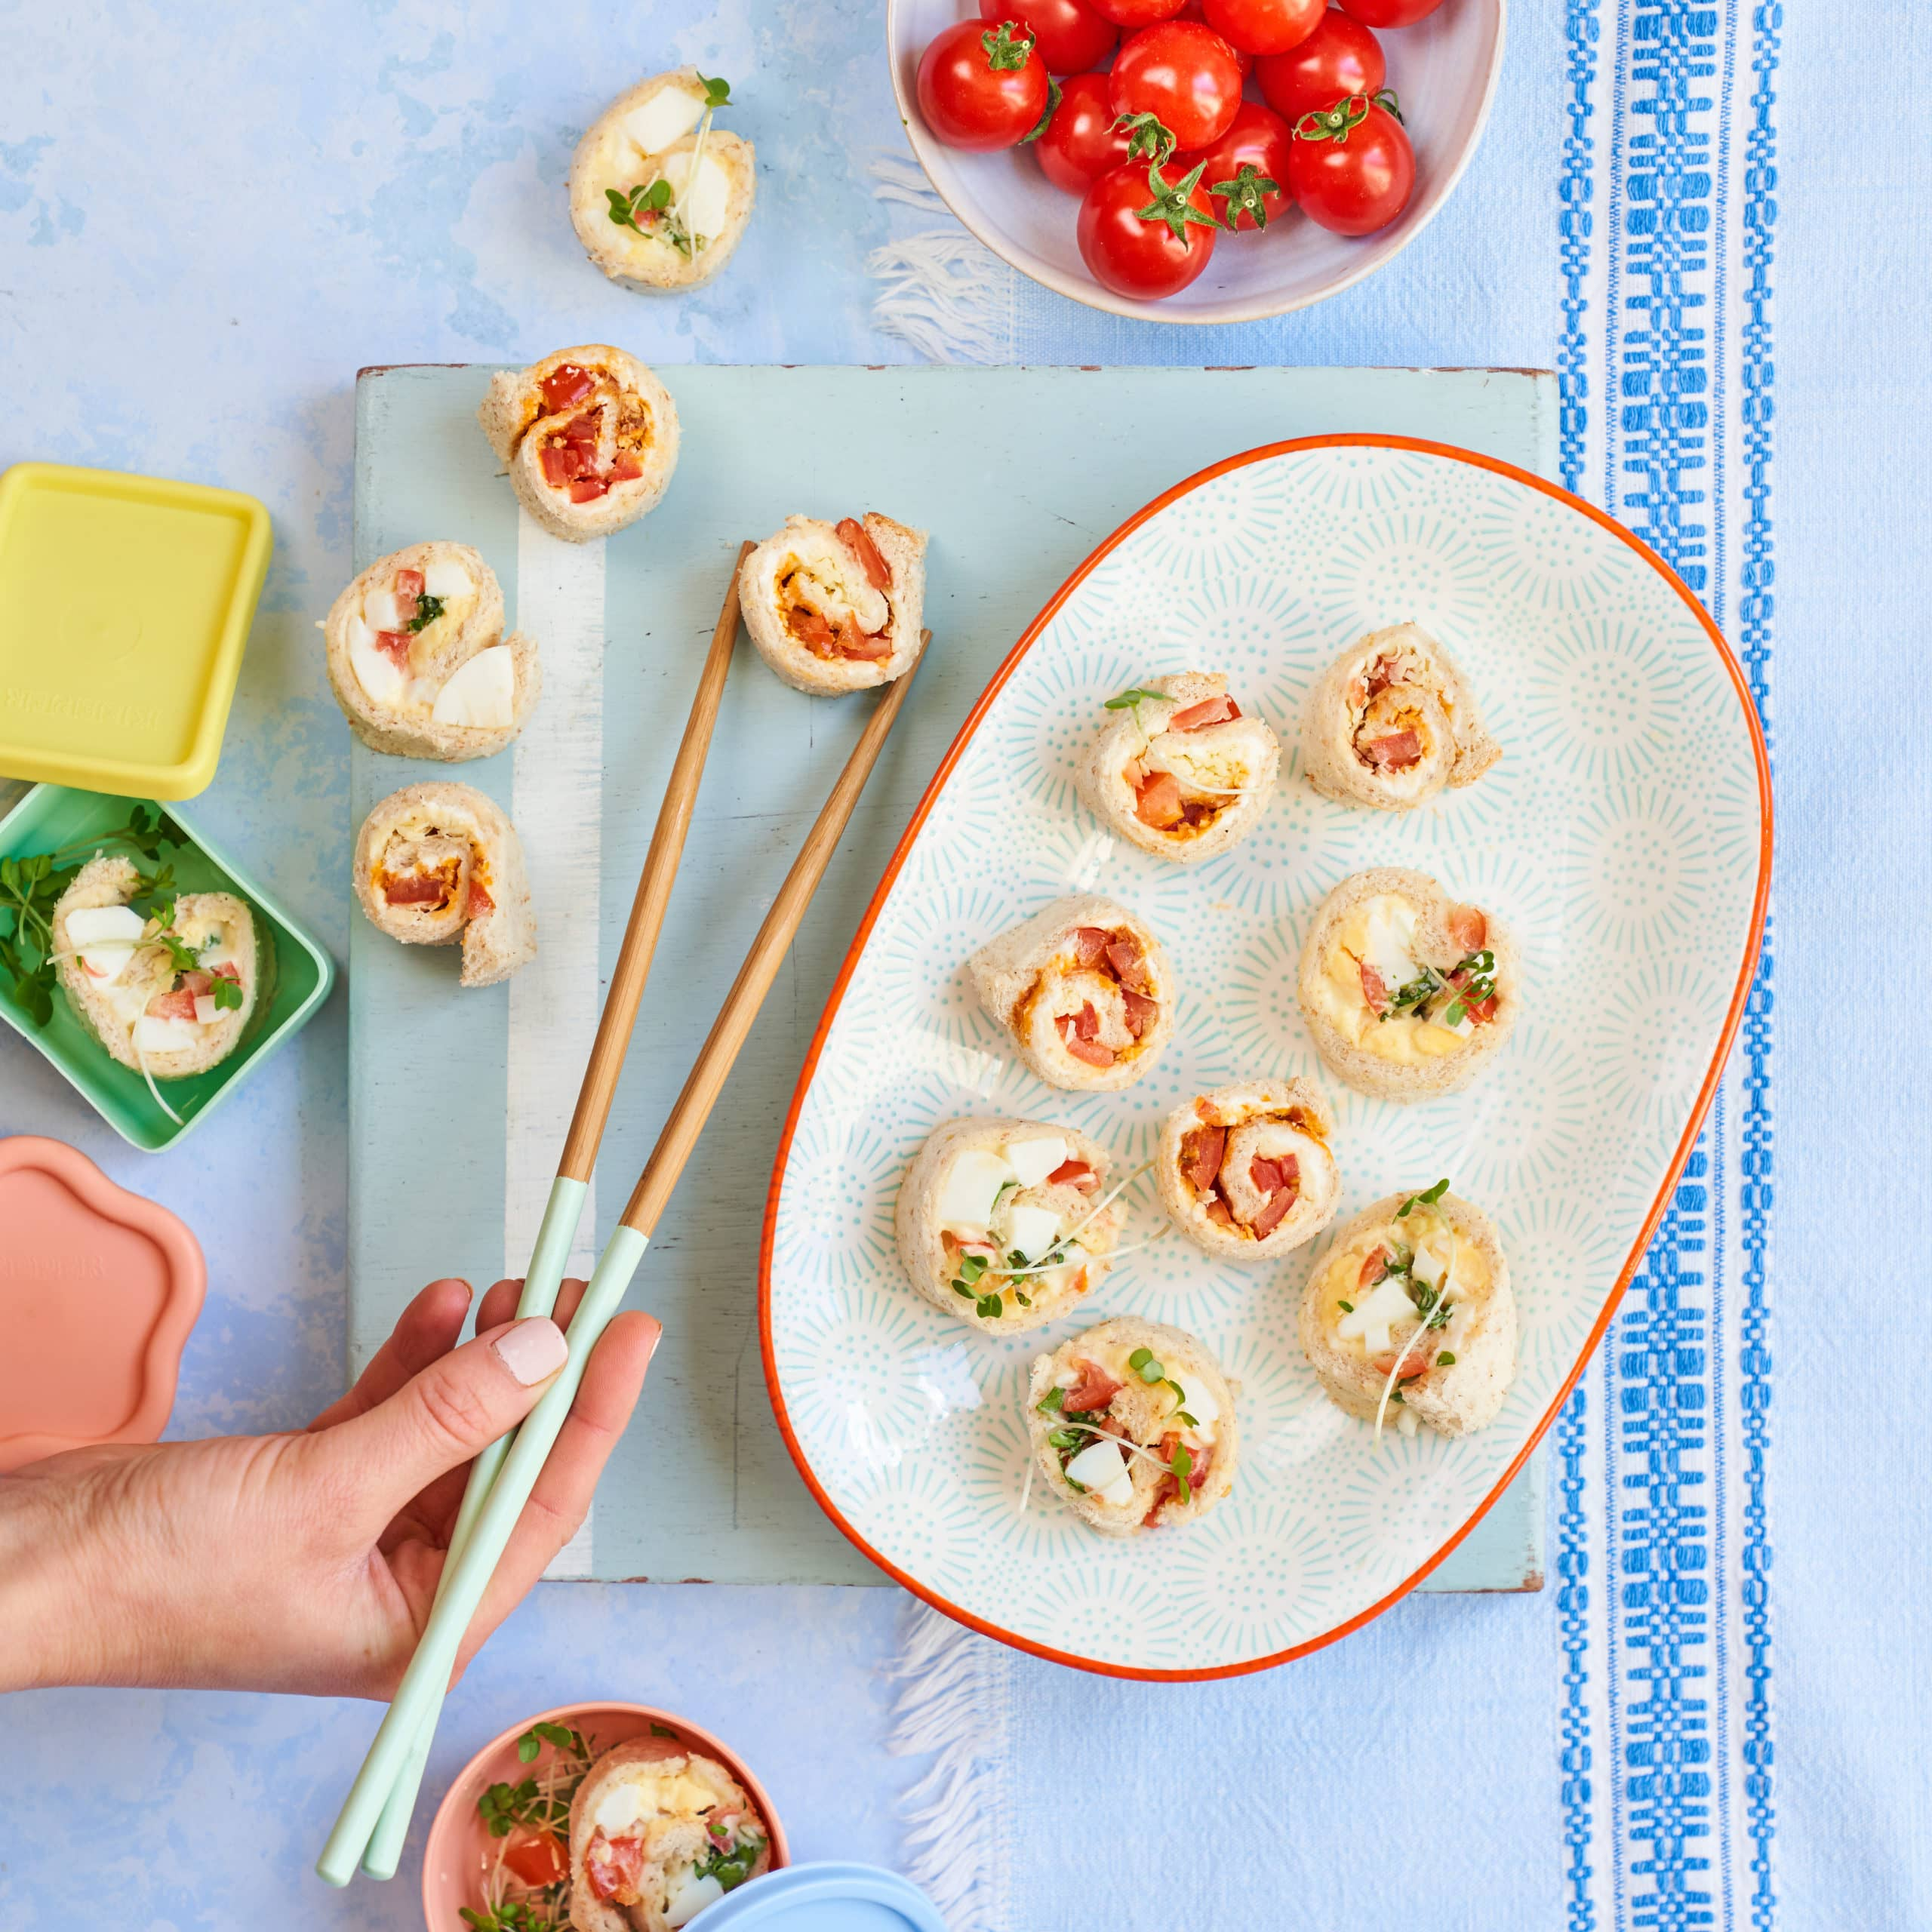 Piccolo Cherry Tomato Sushi Roll-ups recipe by Annabel Karmel